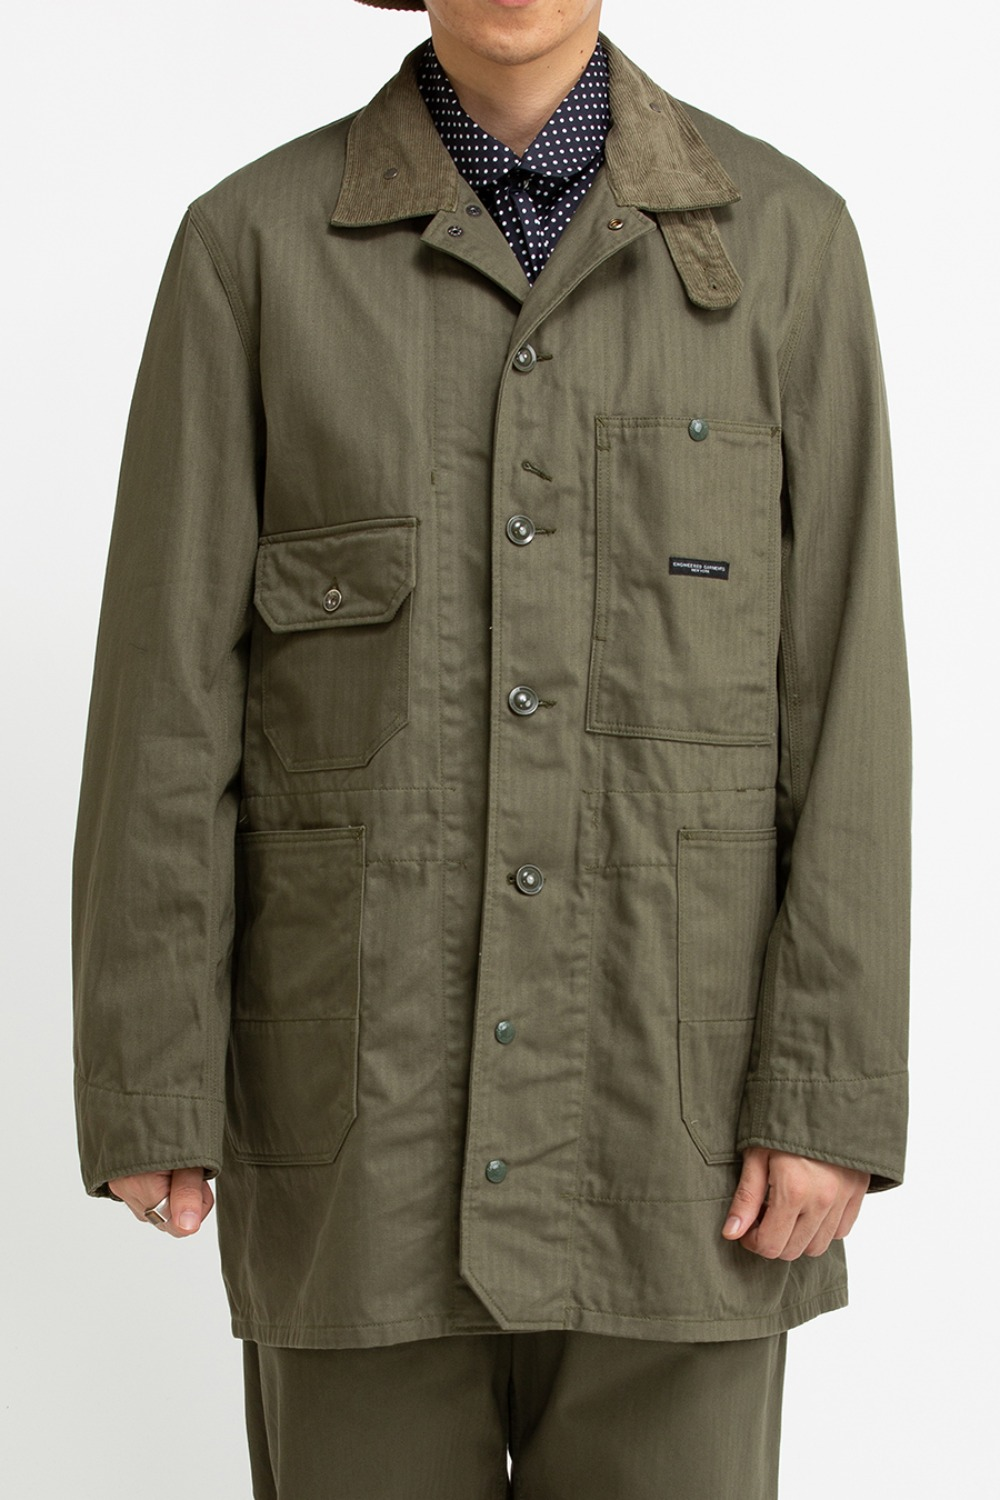 LONG LOGGER JACKET OLIVE COTTON HERRINGBONE